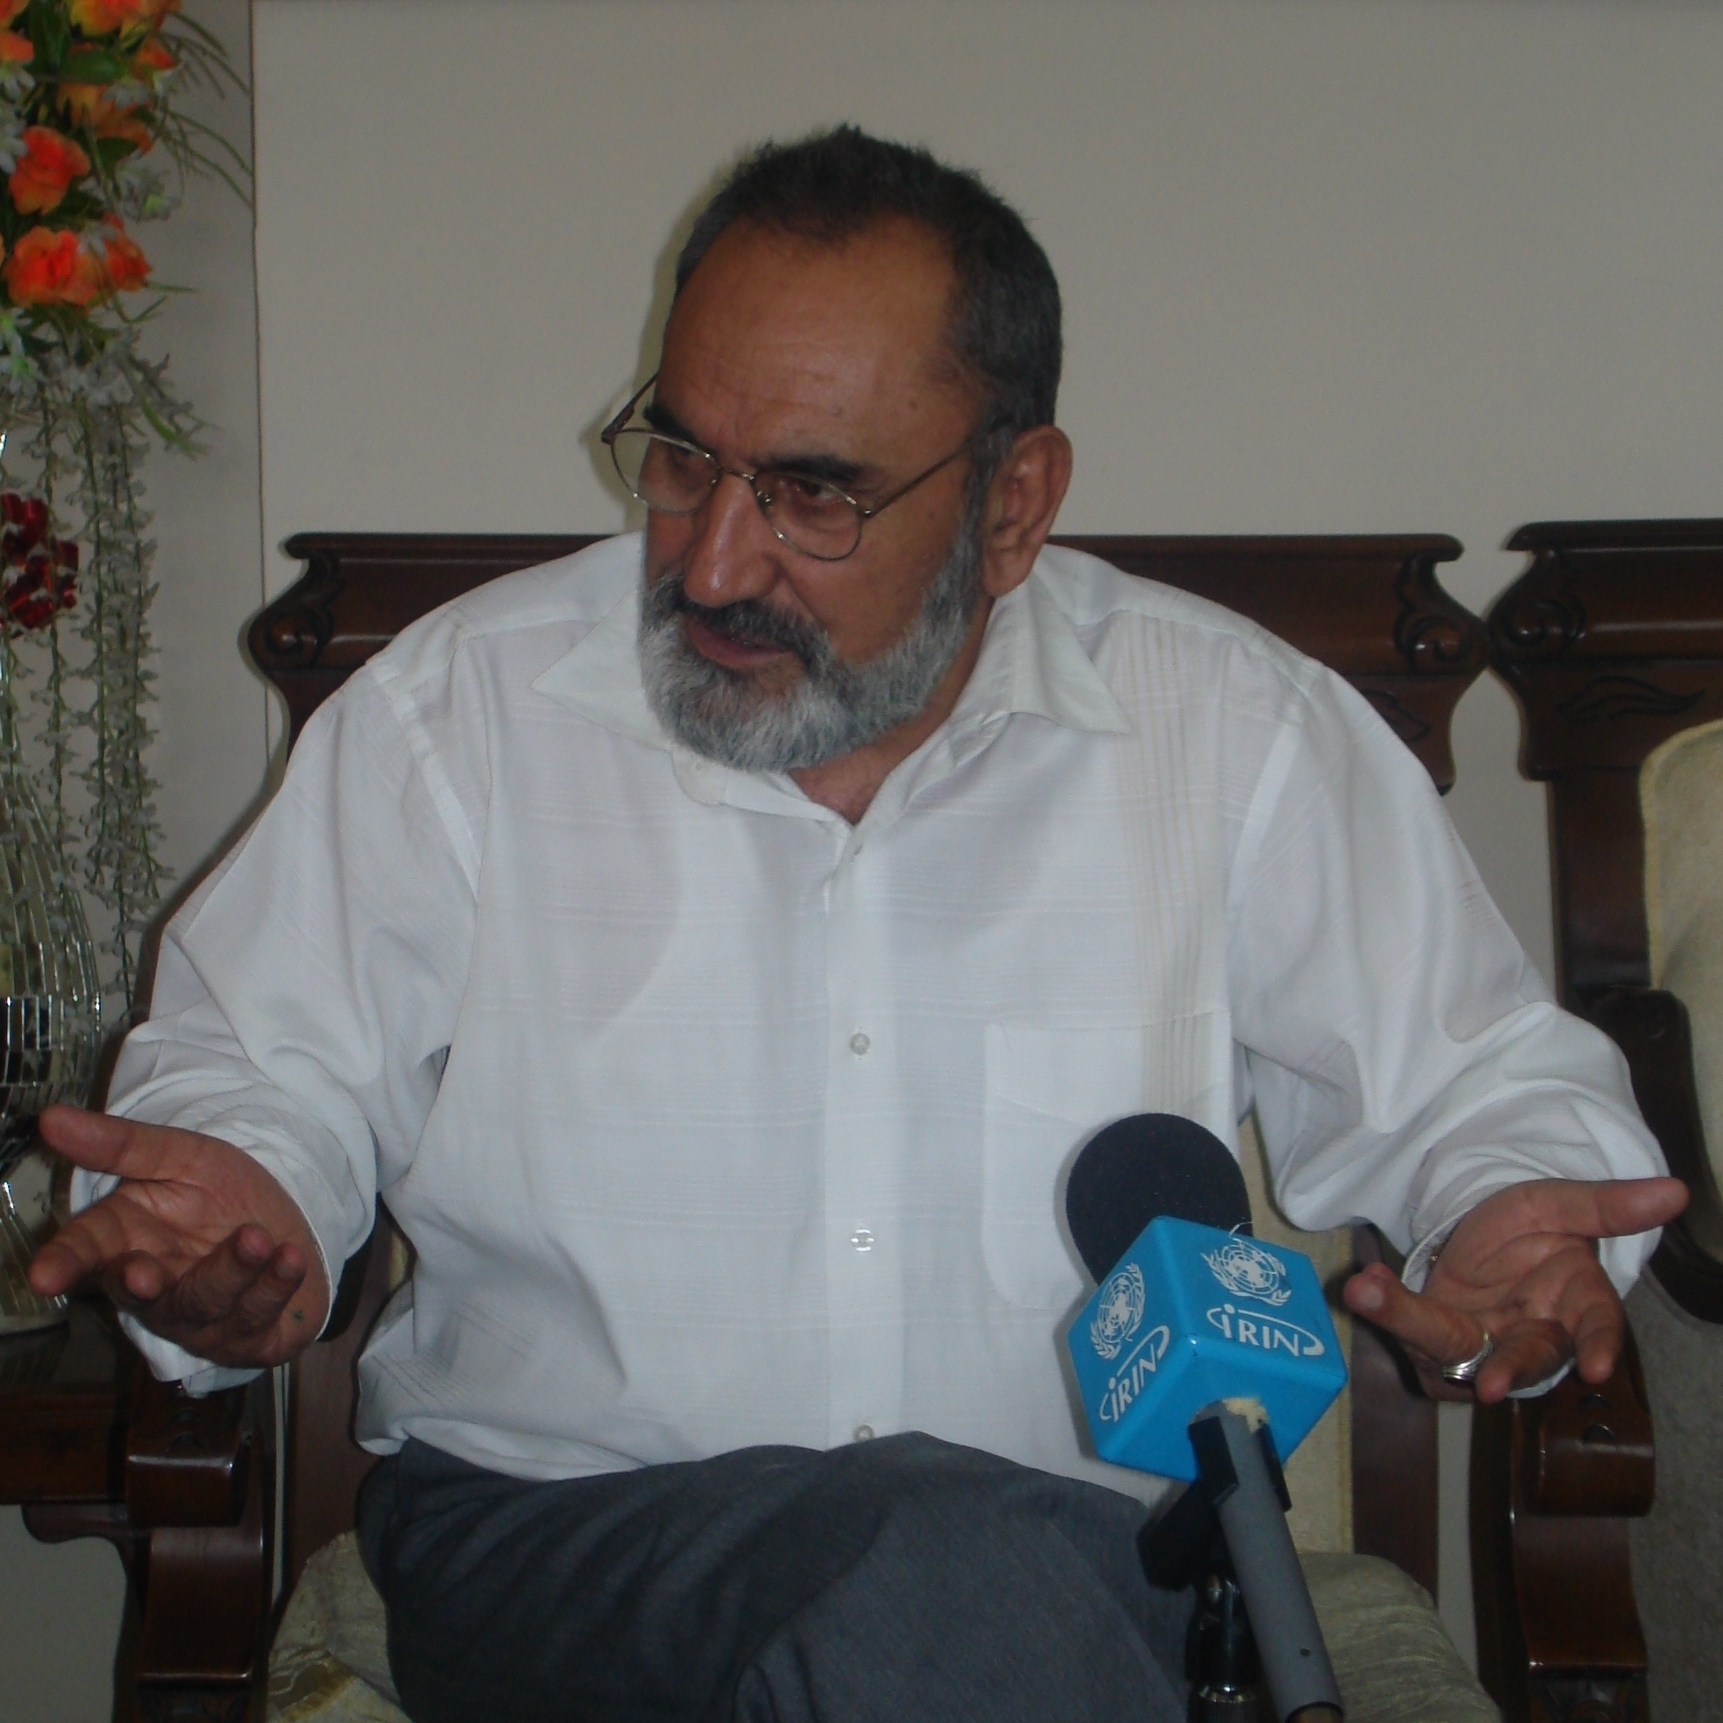 Afghanistan Minister of Refugees and Returnees during an interview with IRIN in Kabul on 7 September 2008.